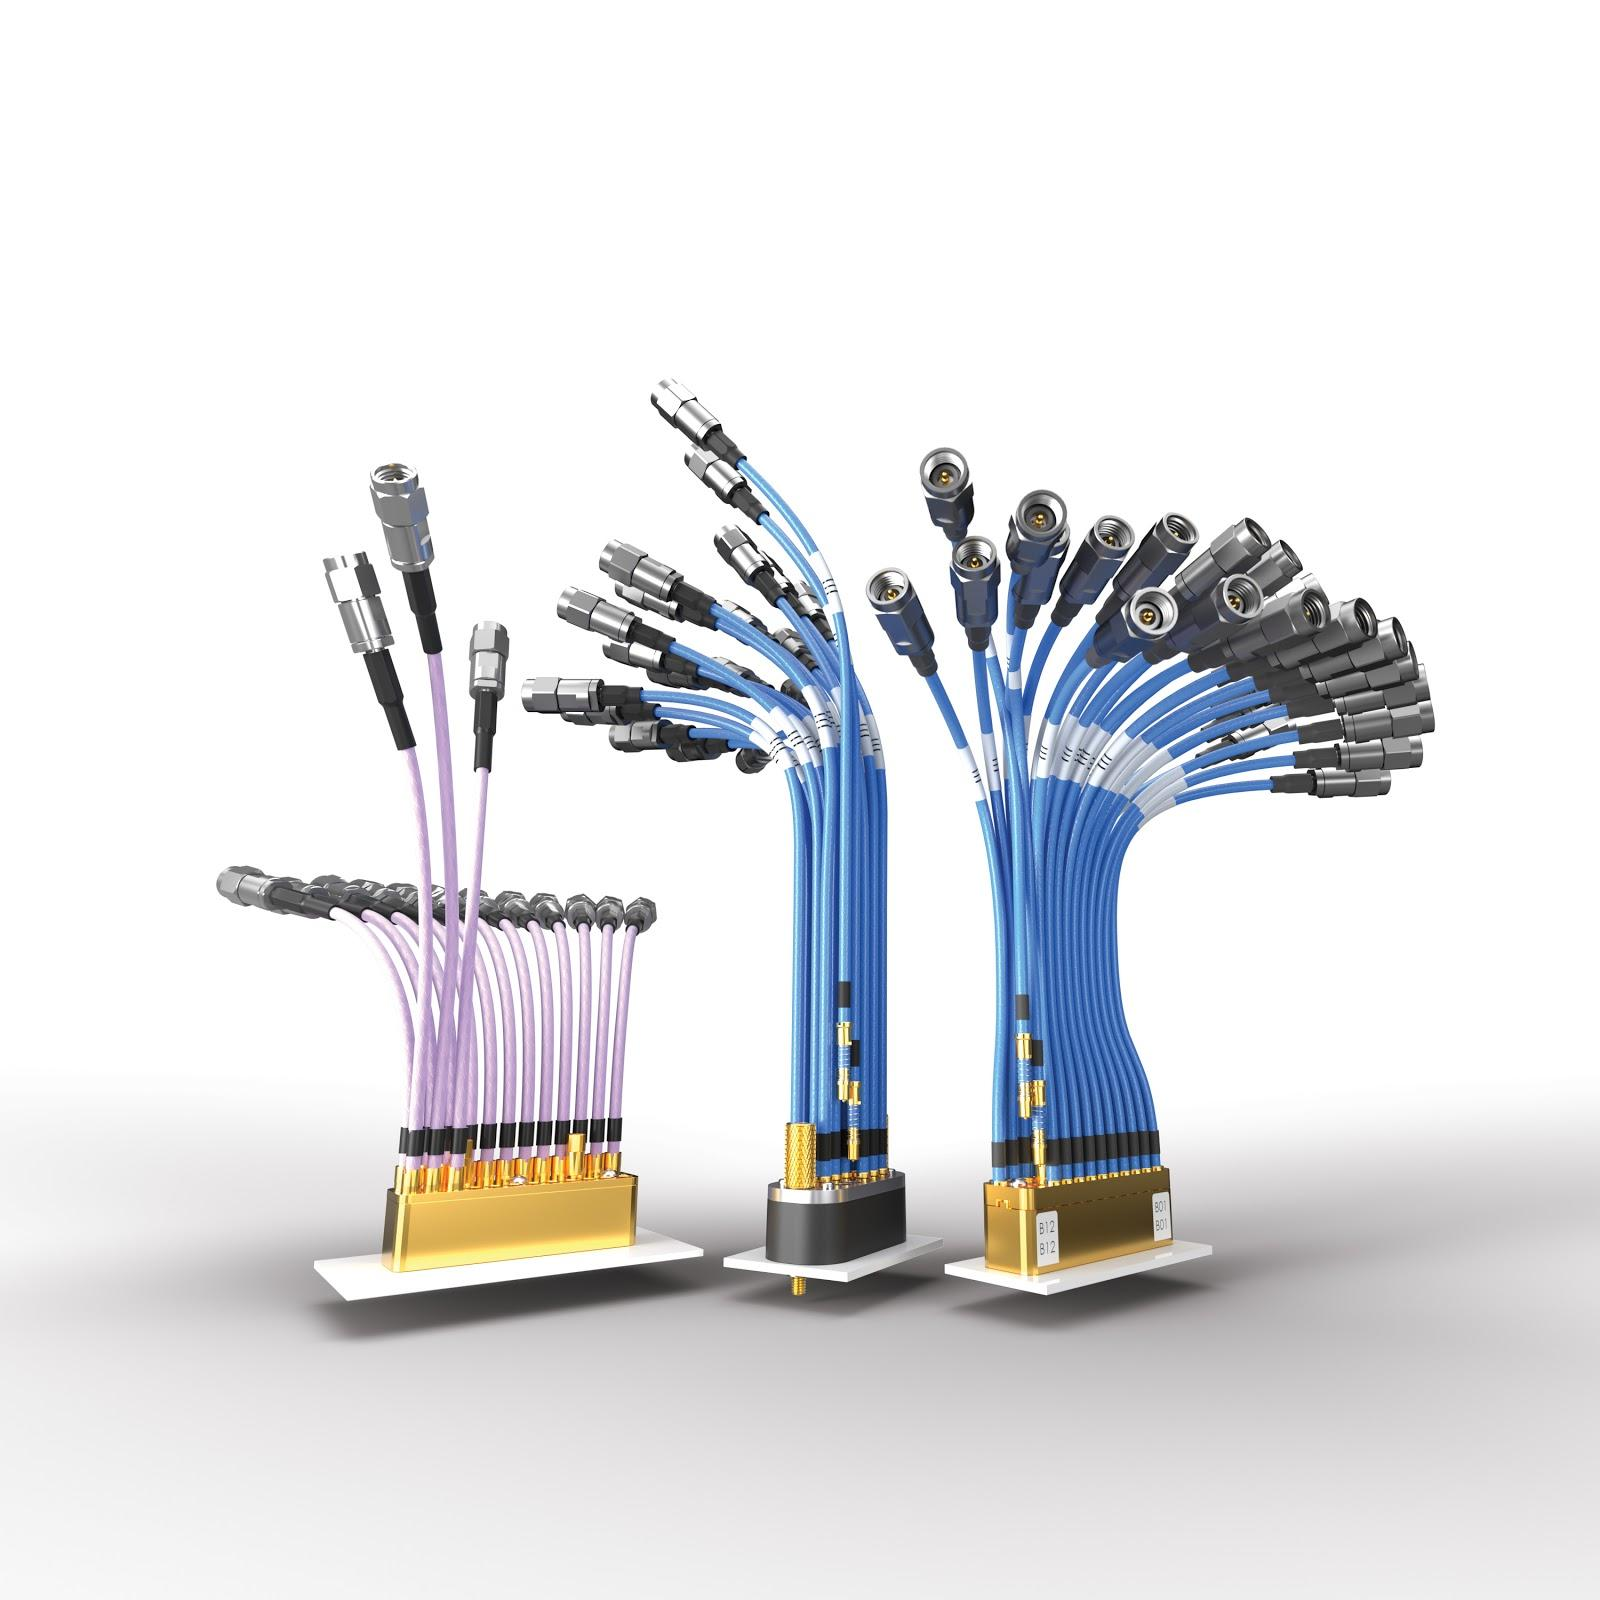 Multiple rendered images of Samtec BullsEye BE70 connector systems capable of 70GHz of bandwidth. Image courtesy of Samtec, Inc.